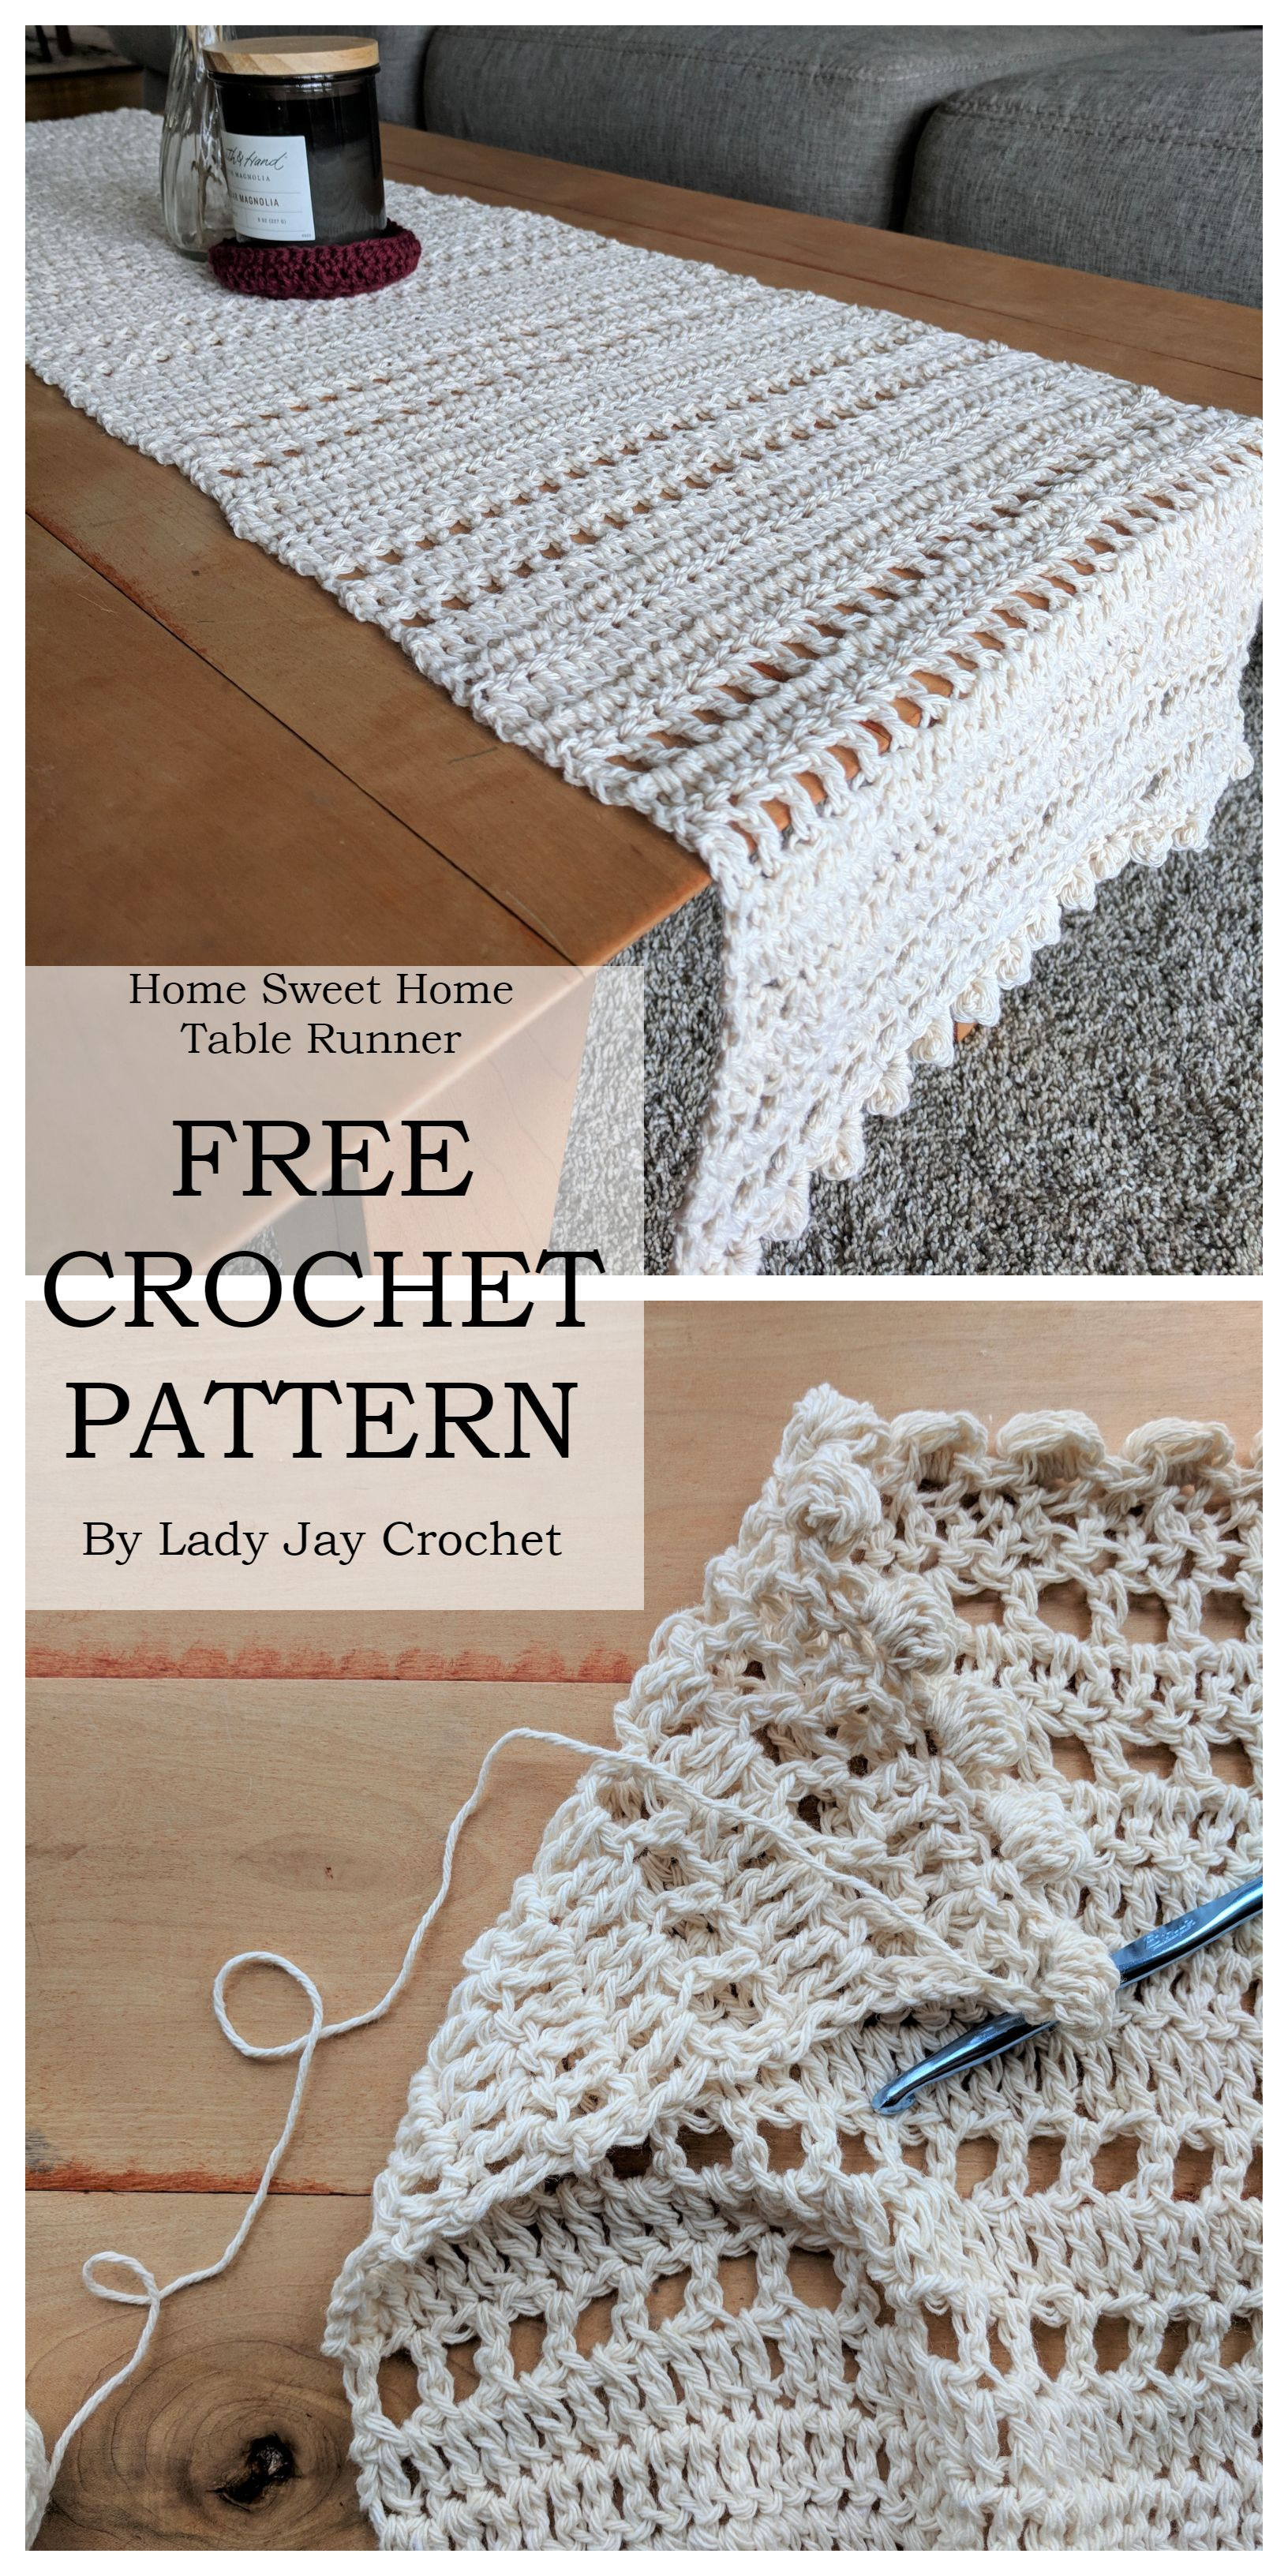 FREE CROCHET PATTERN: Home Sweet Home Table Runner by Lady Jay Crochet